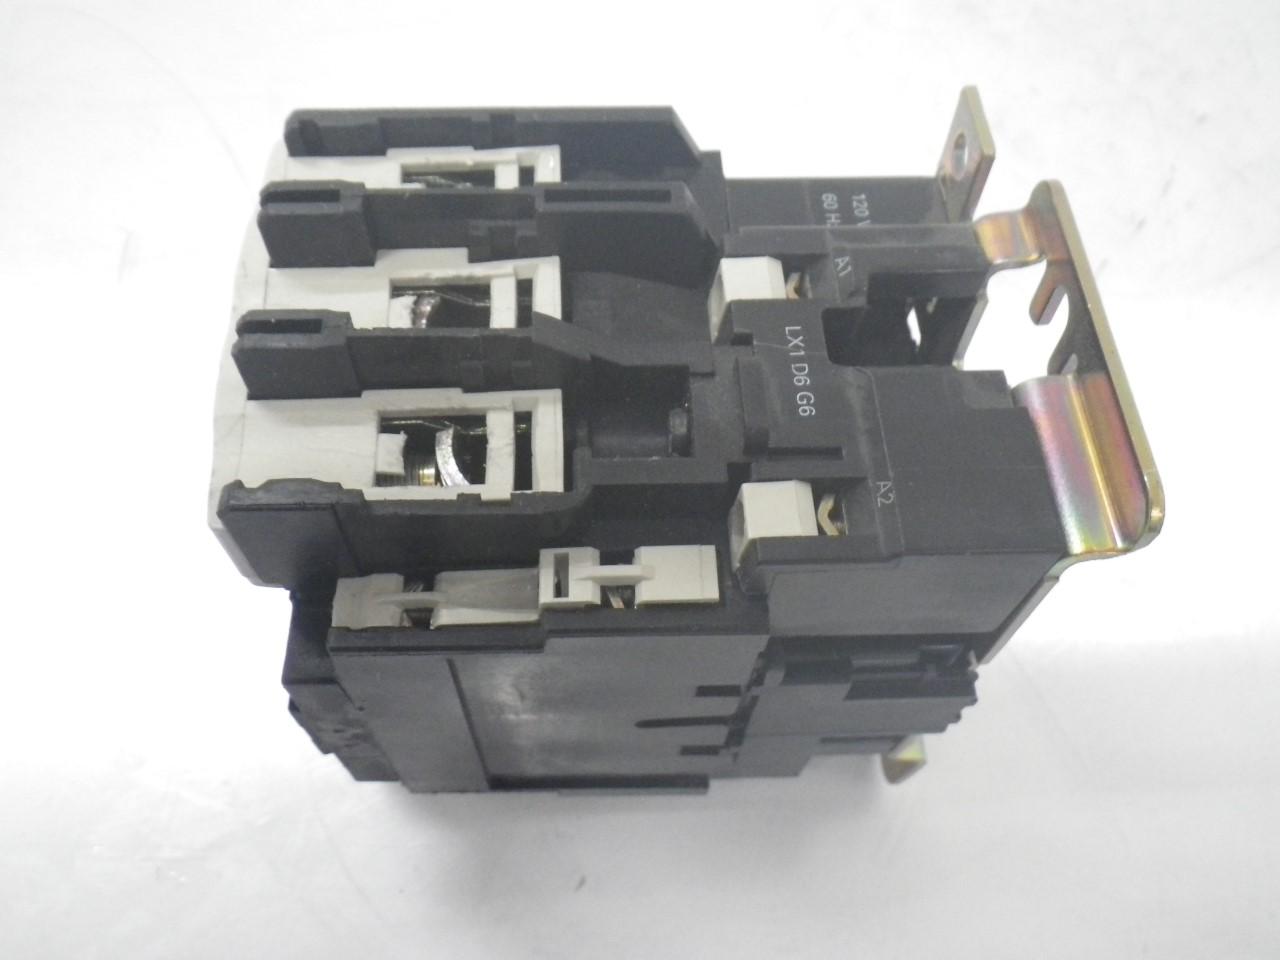 IMGP8343125A, 600V (5)LC1D8011 Telemecanique Contactor Magnetic Power Relay 125a, 600v (Used Tested)